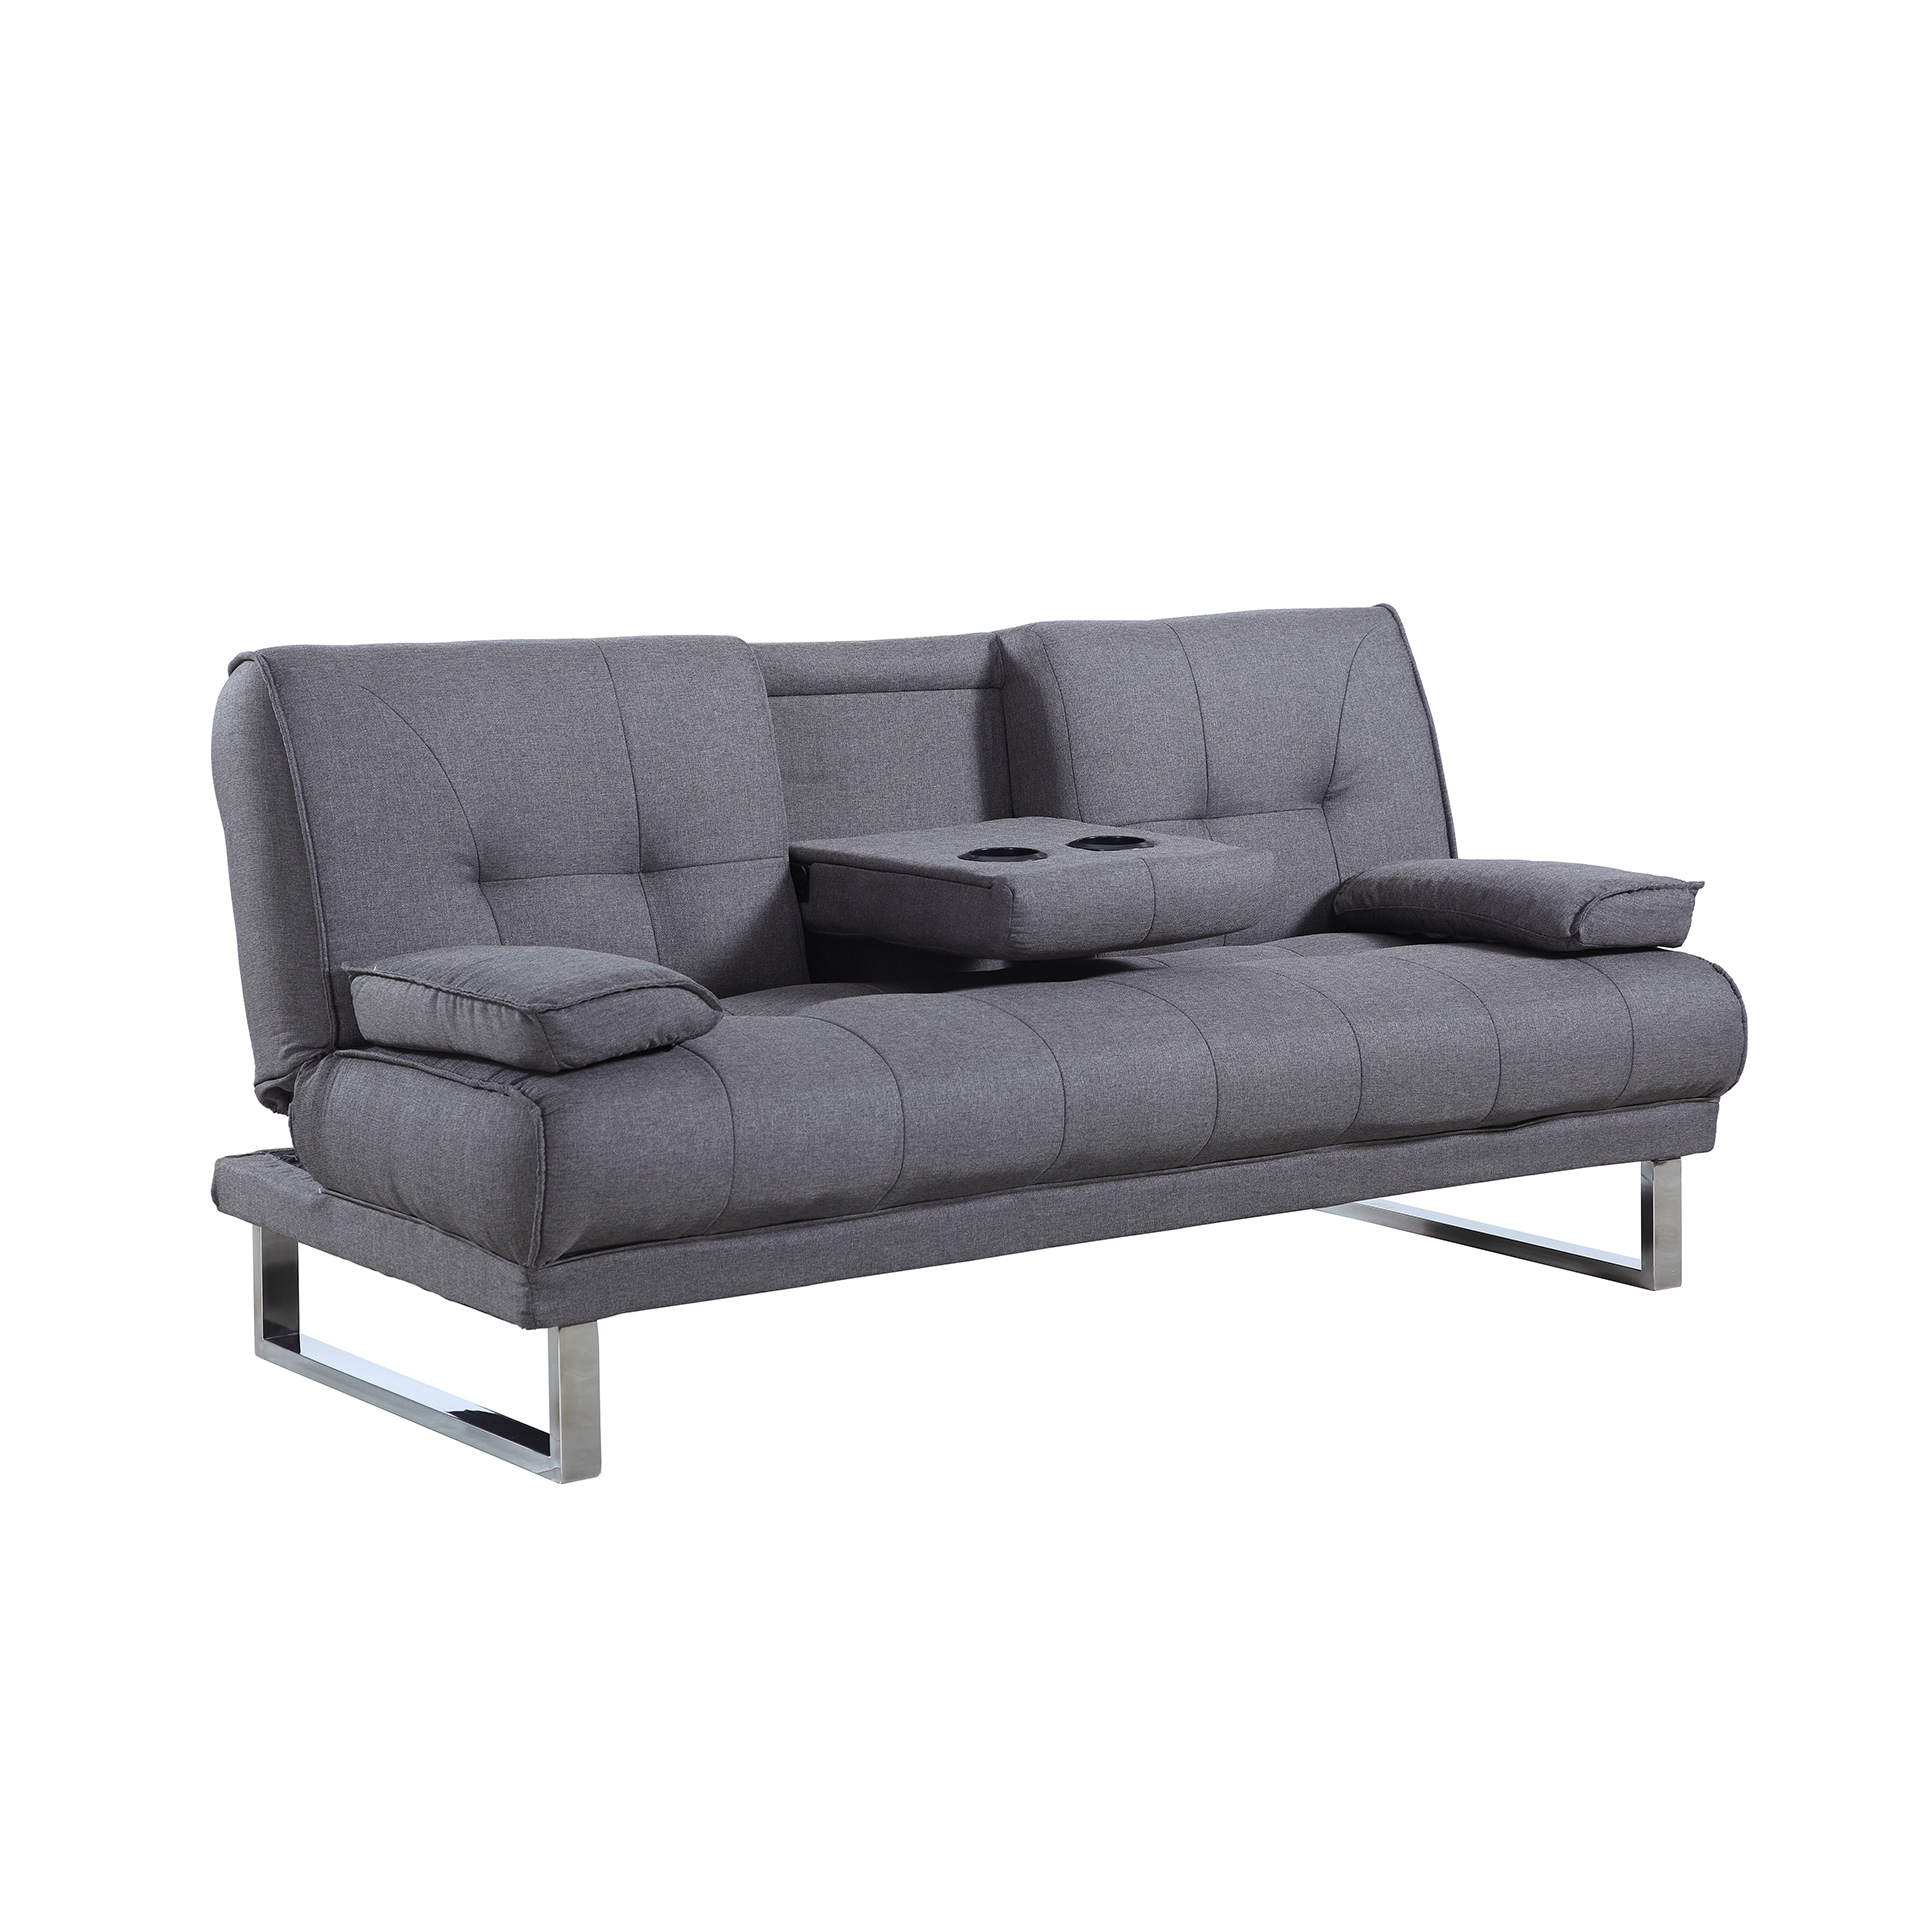 Samson sofa bed furniture store manila philippines urban for Sofa bed in philippines